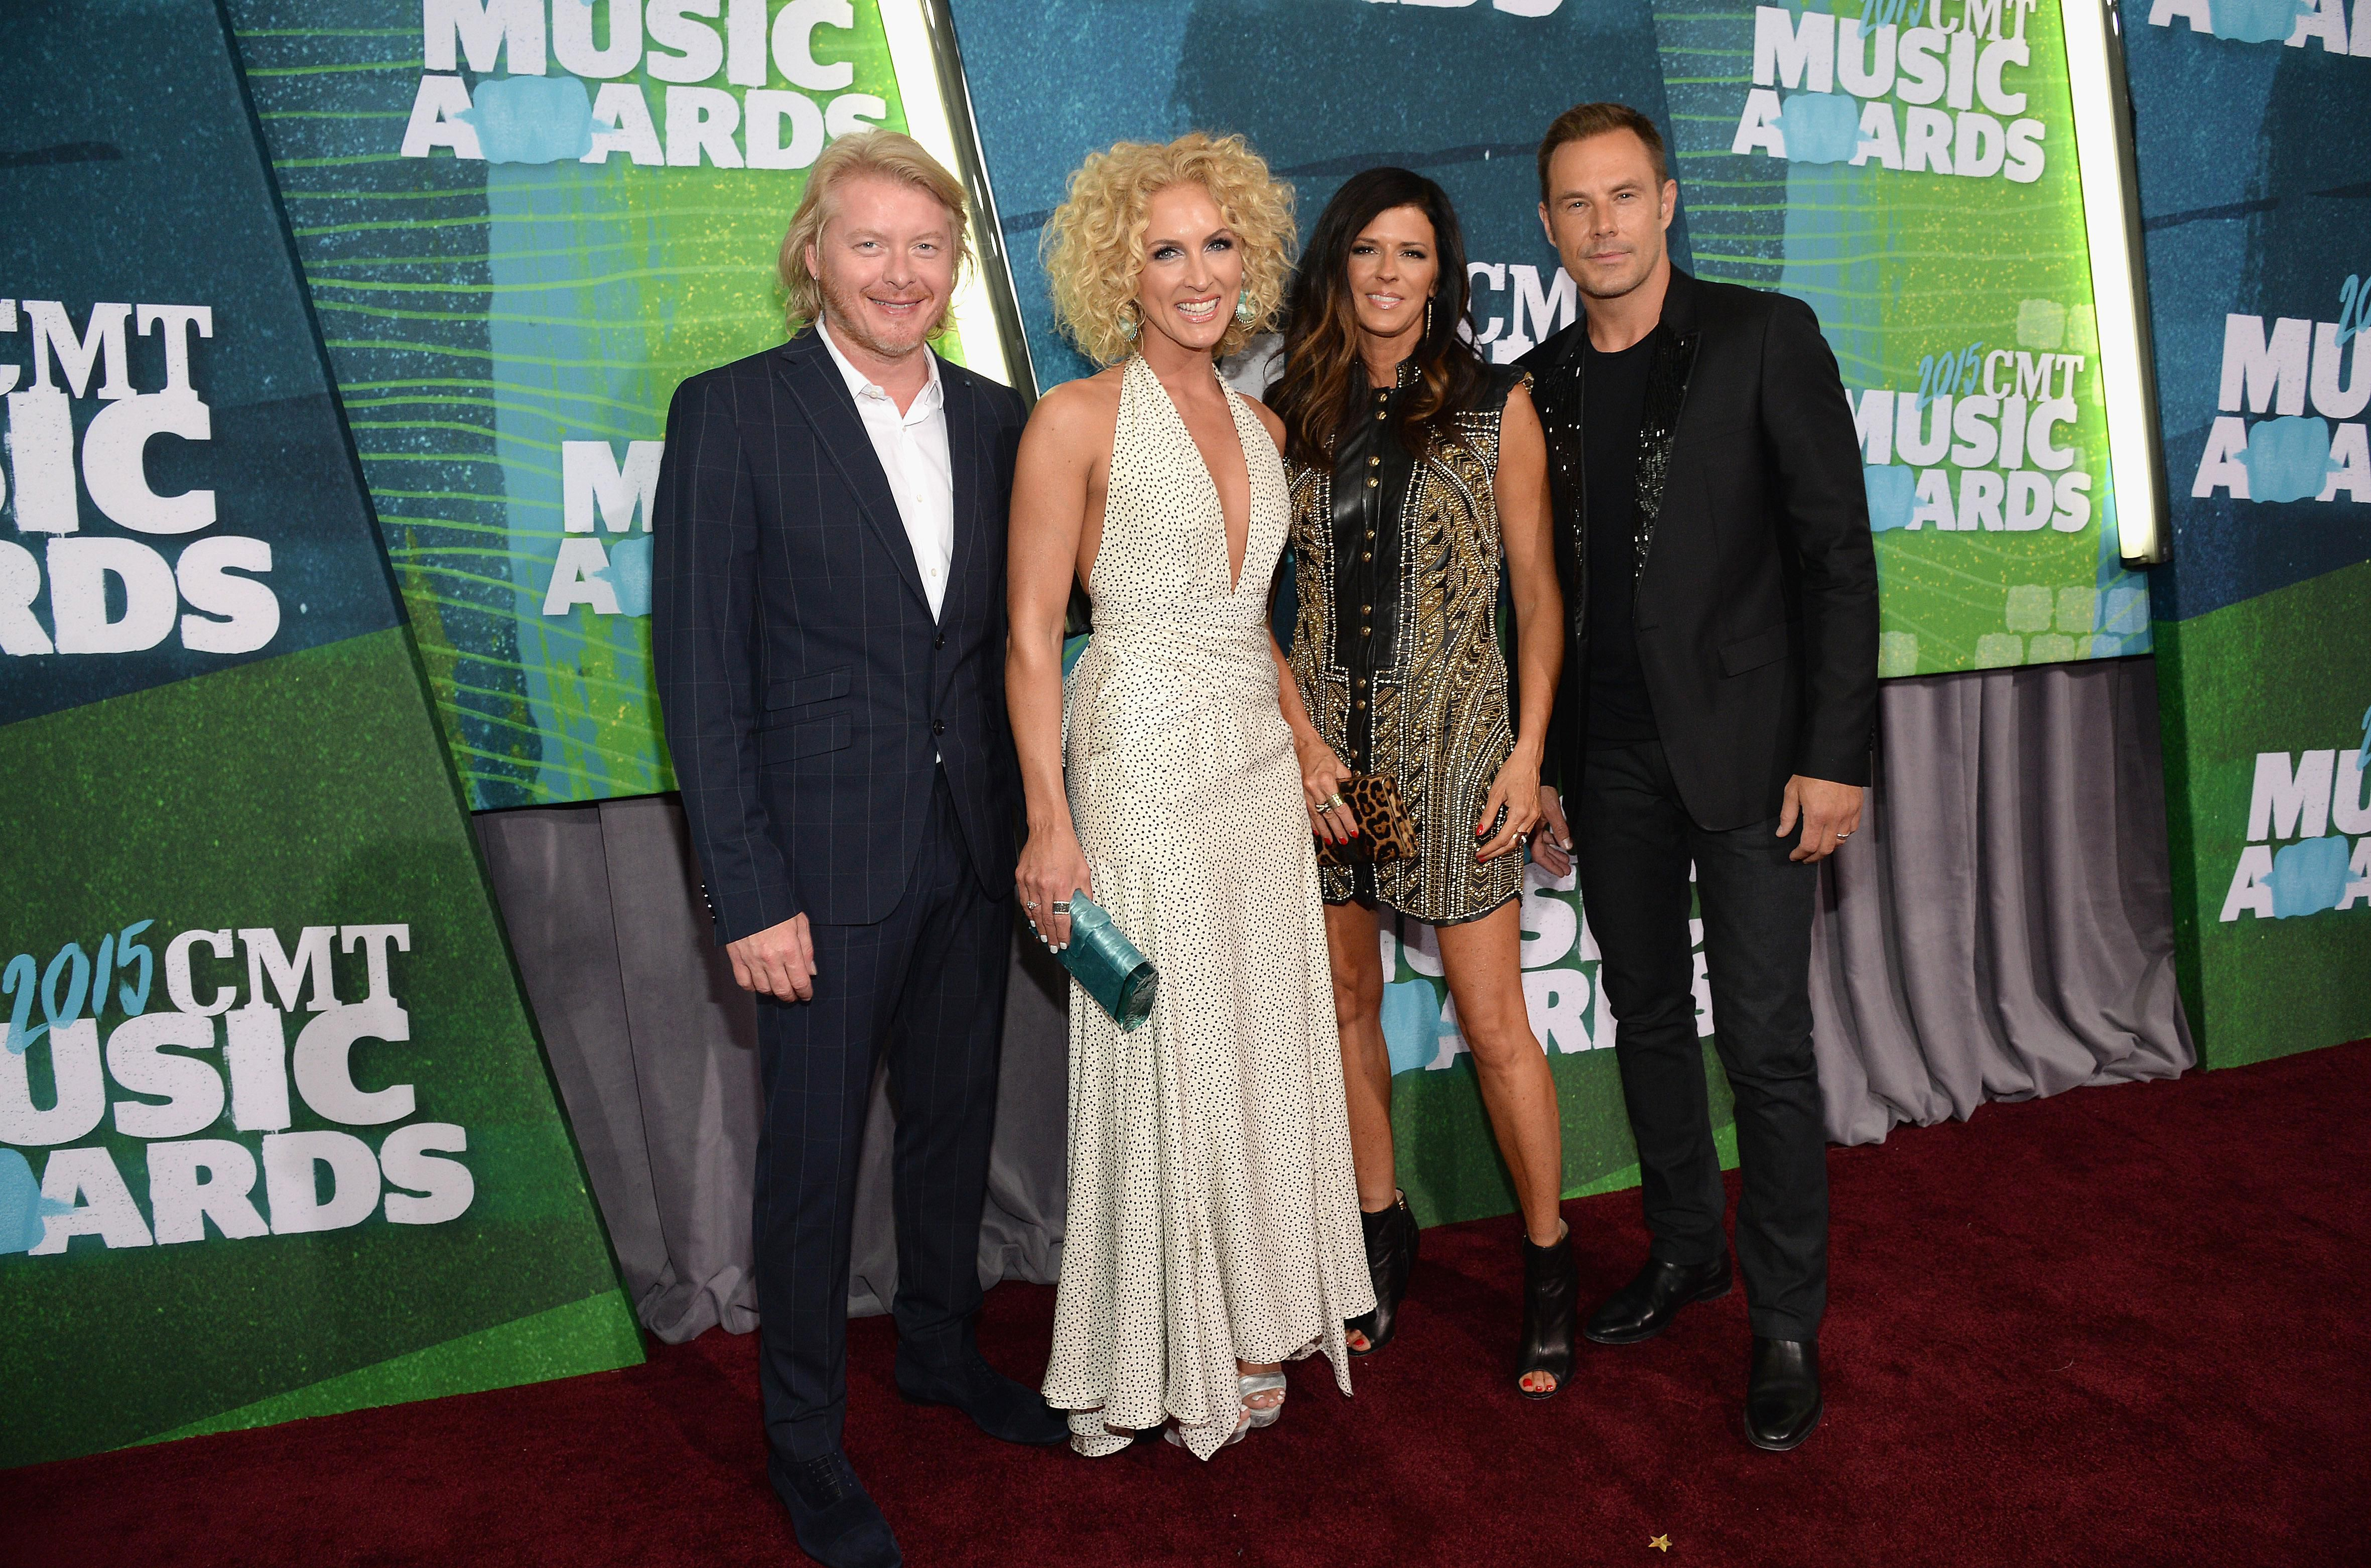 Little Big Town at the 2015 CMT Music Awards